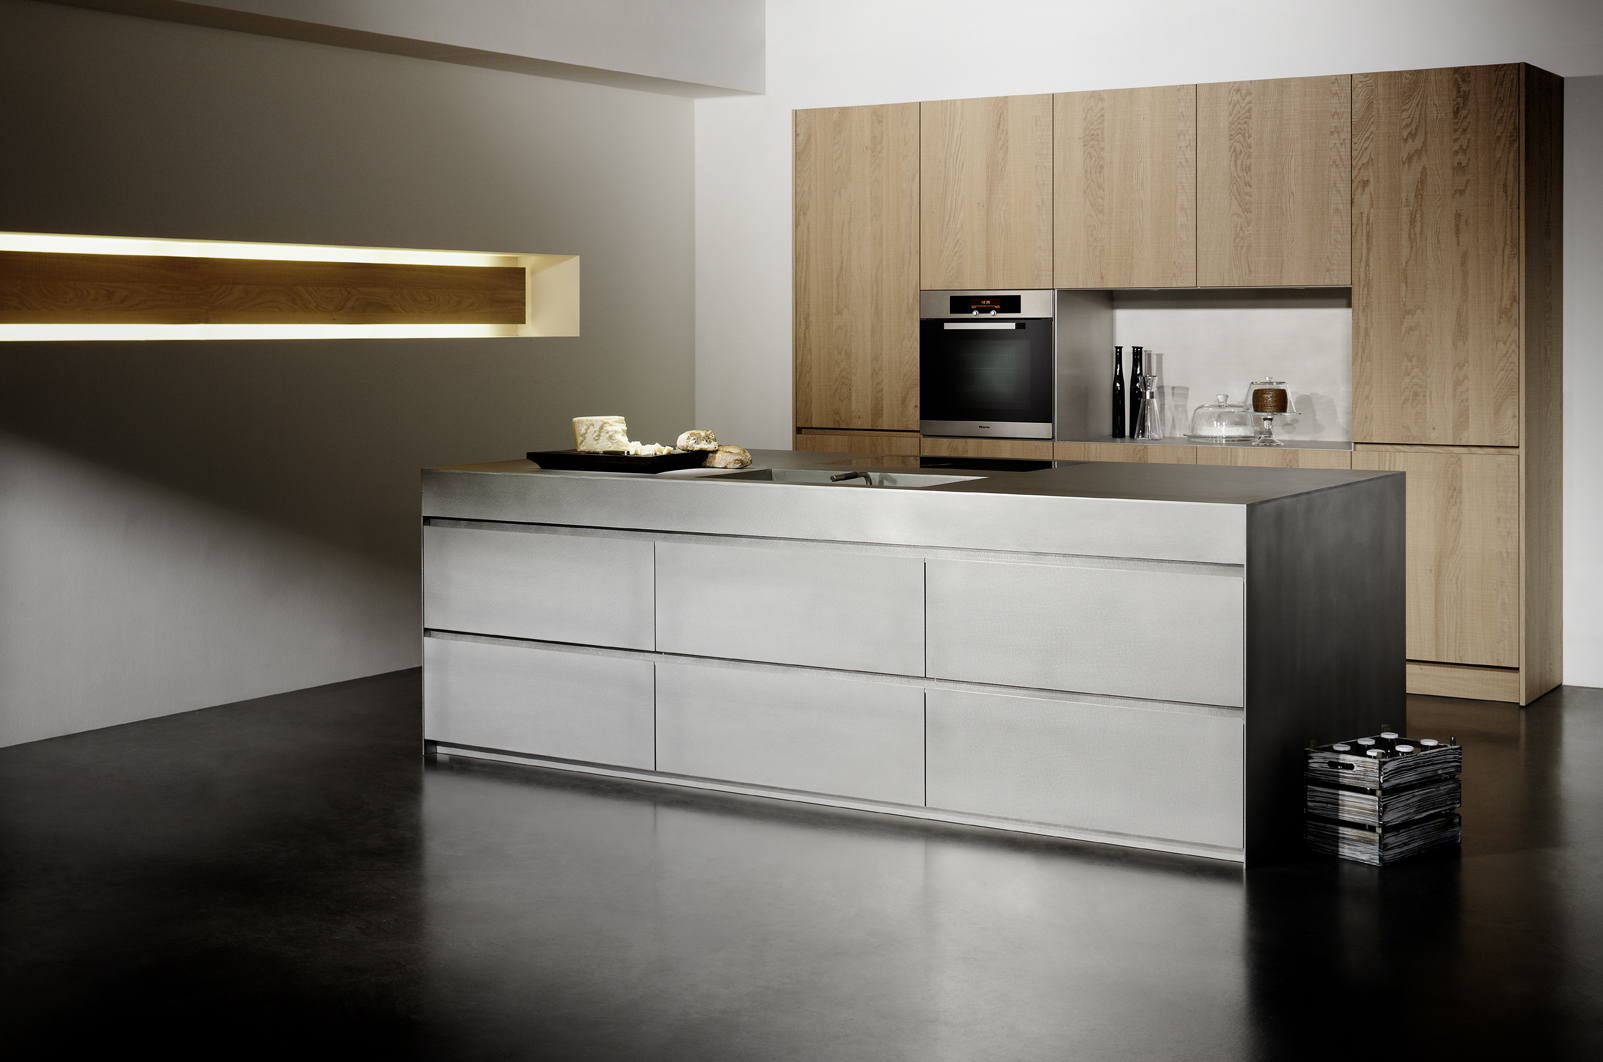 stainless_steel_silver_touch_Haupt_01.jpg